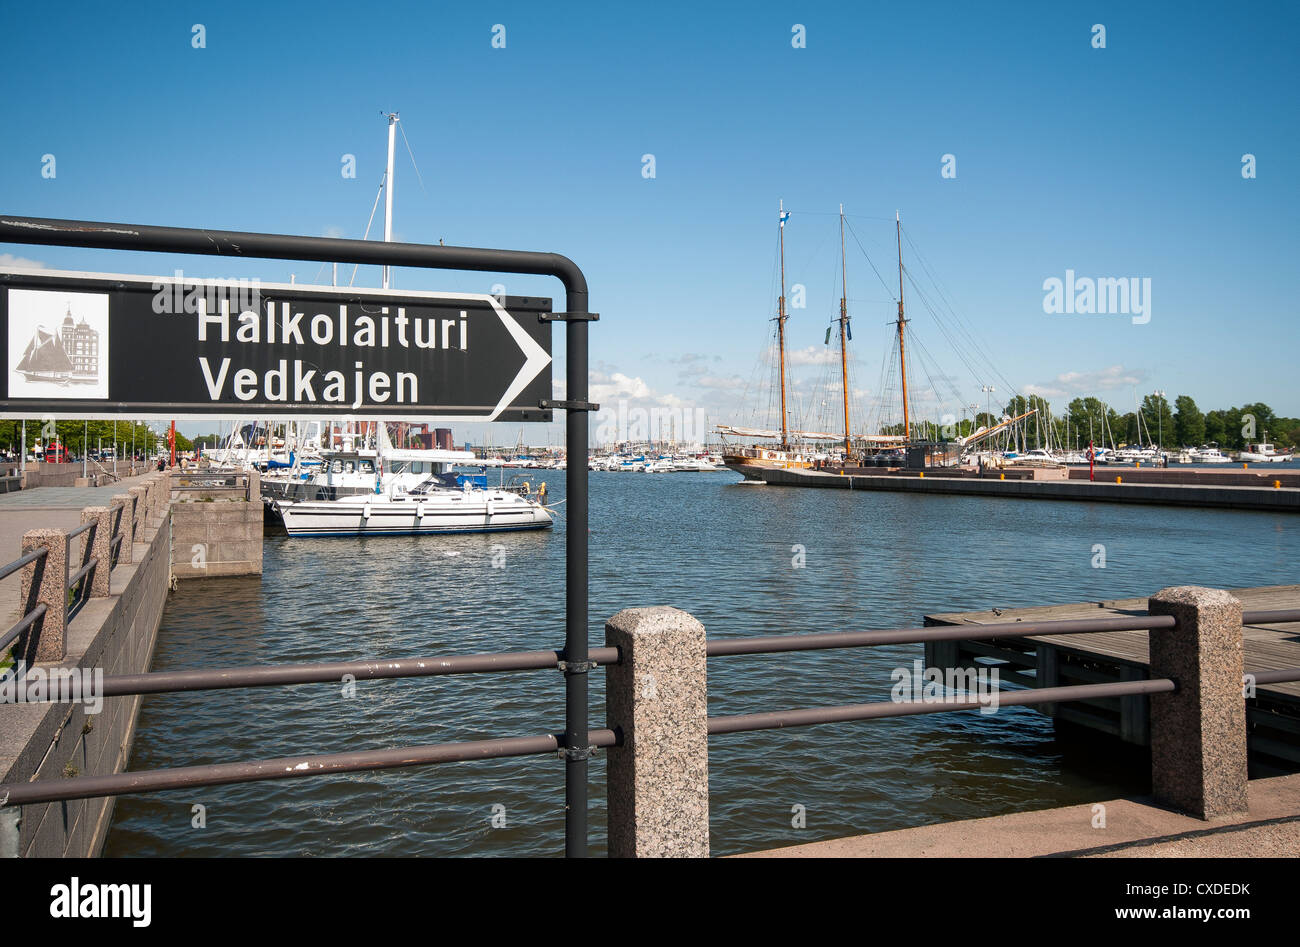 Halkolaituri Firewood Quay Helsinki. The quay is named after the yawls that used to carry firewood from the Uusimaa - Stock Image